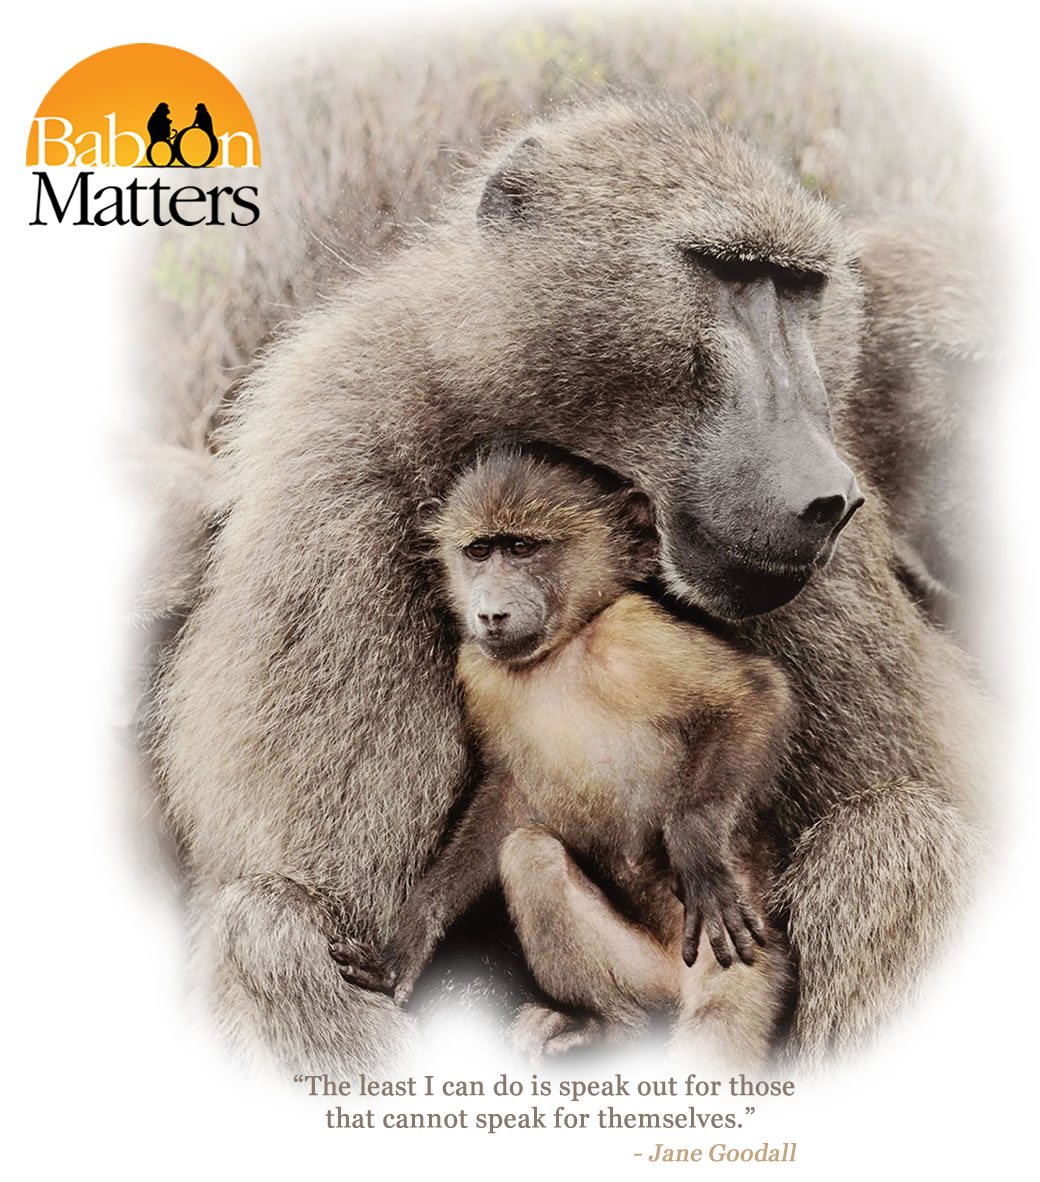 Baboon Matters Trust - baboon conservation in South Africa